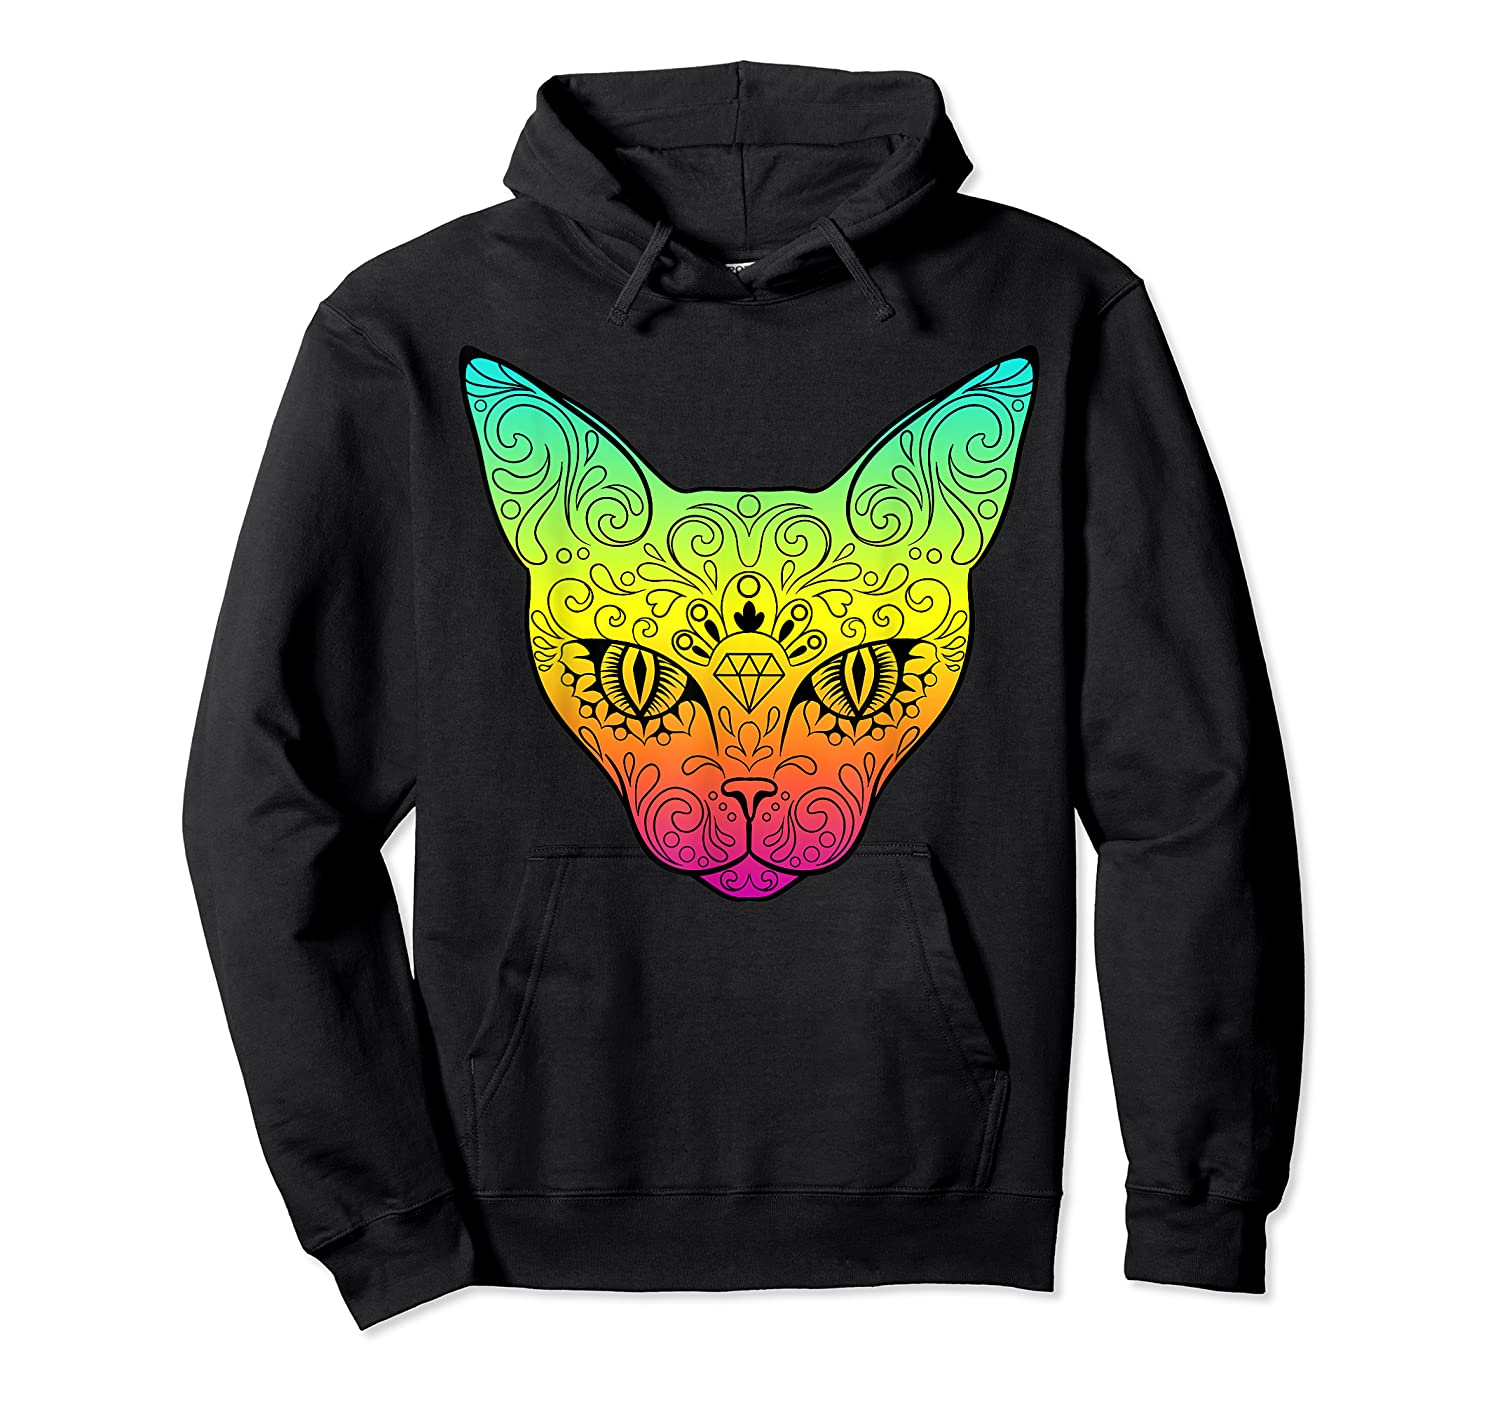 Techno Trance Edm Club Day Of The Dead Cat Sugar Skull Shirts Unisex Pullover Hoodie